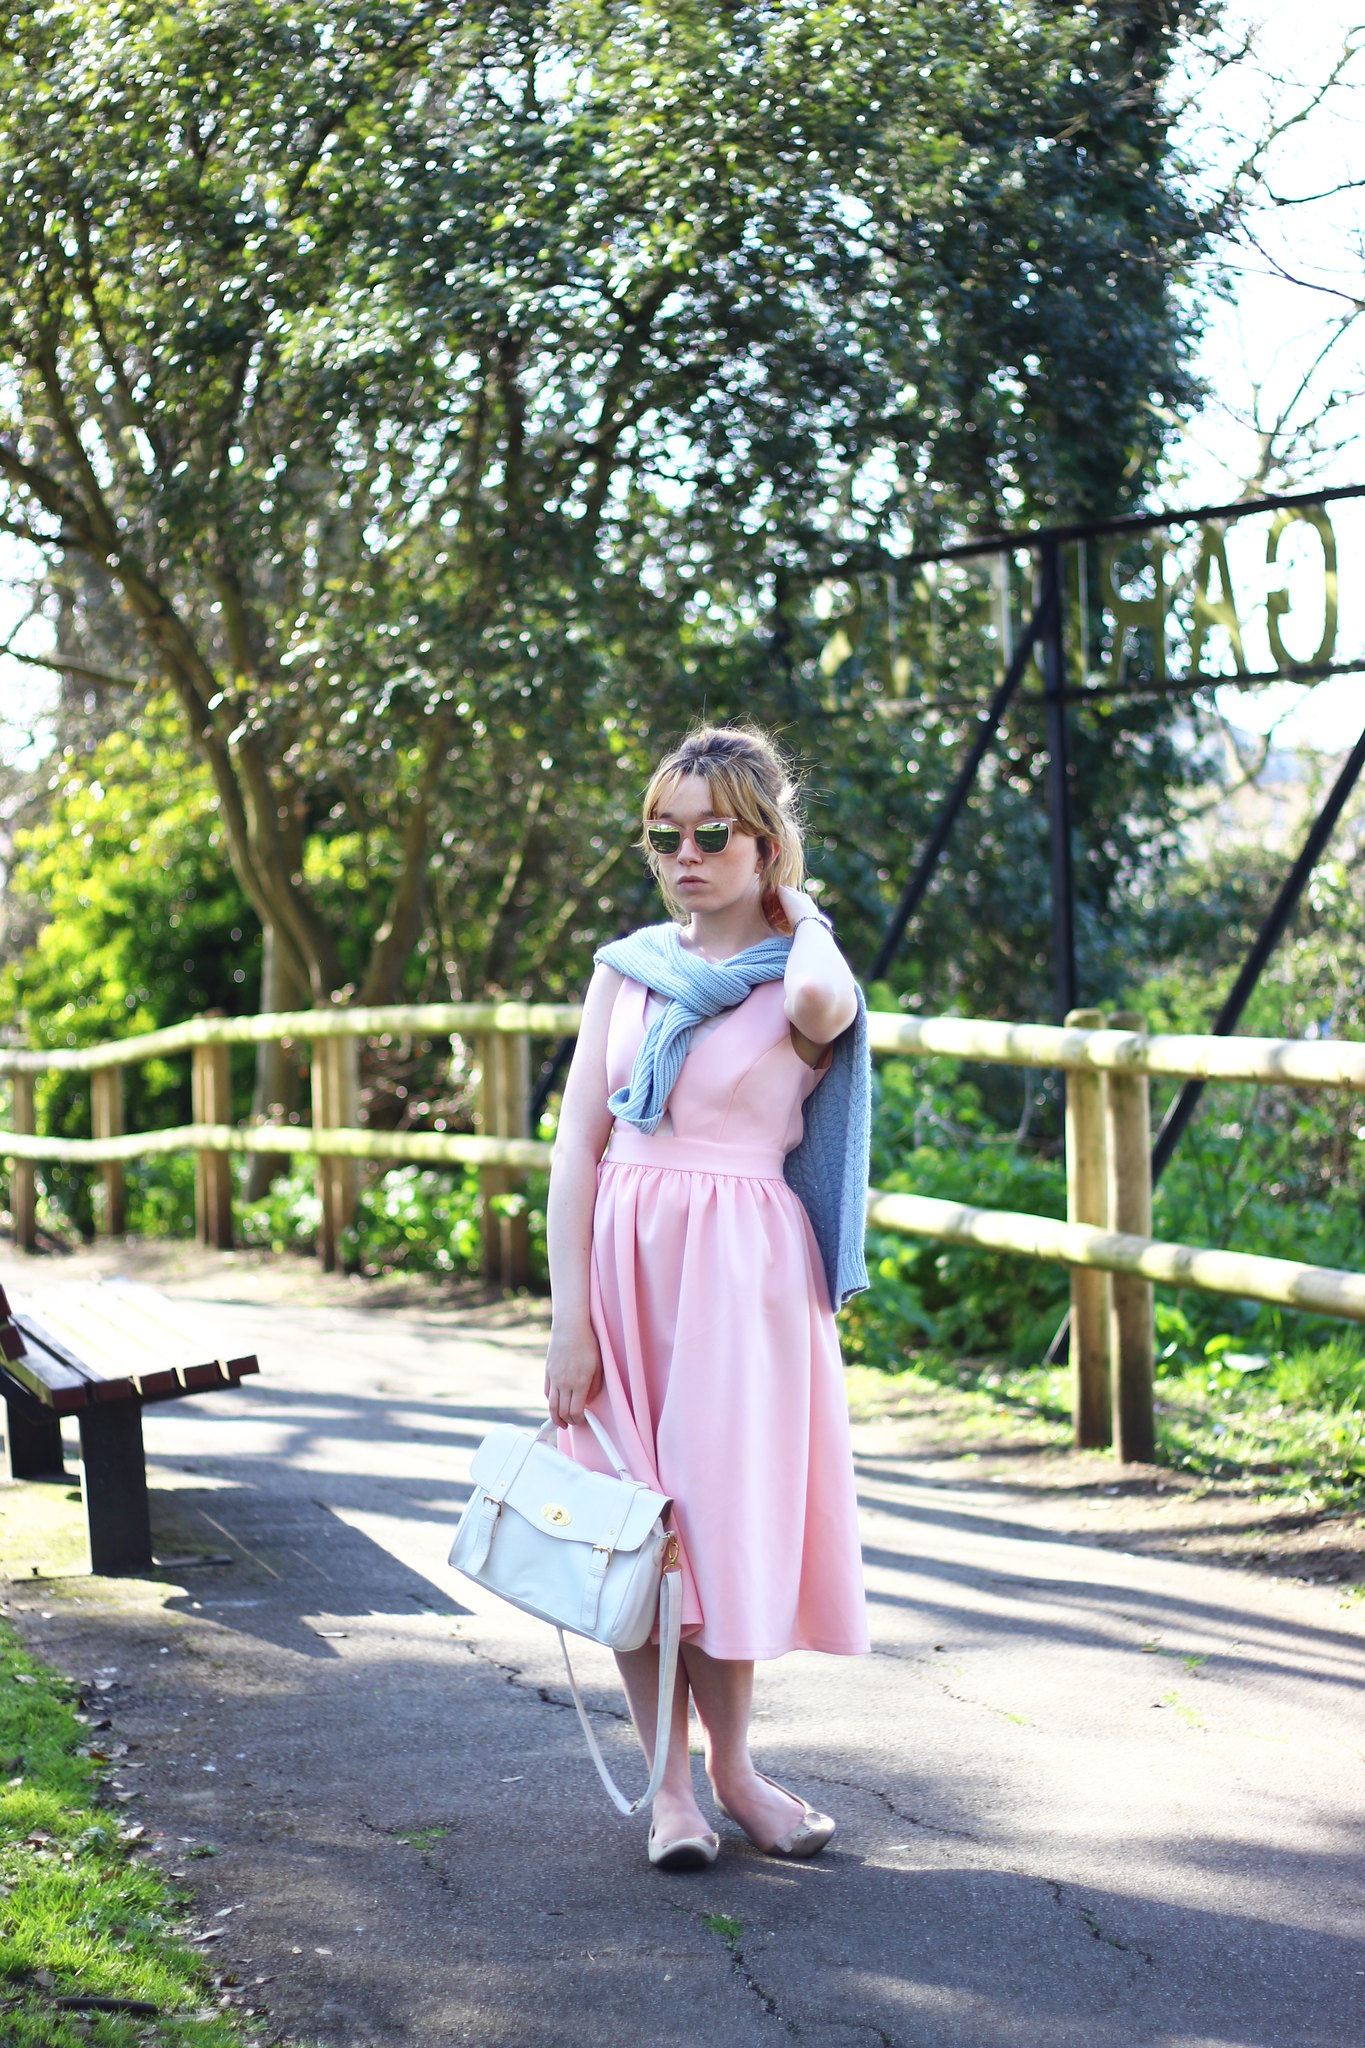 6pasteloutfit, pastel, asos, pink, blue, spring, summer, 2014, trend, fashion, style, retro, cat-eye sunglasses, knitwear, 50's, vintage, inspired, high street, personal style, stylepeaches, blog, outfit, look